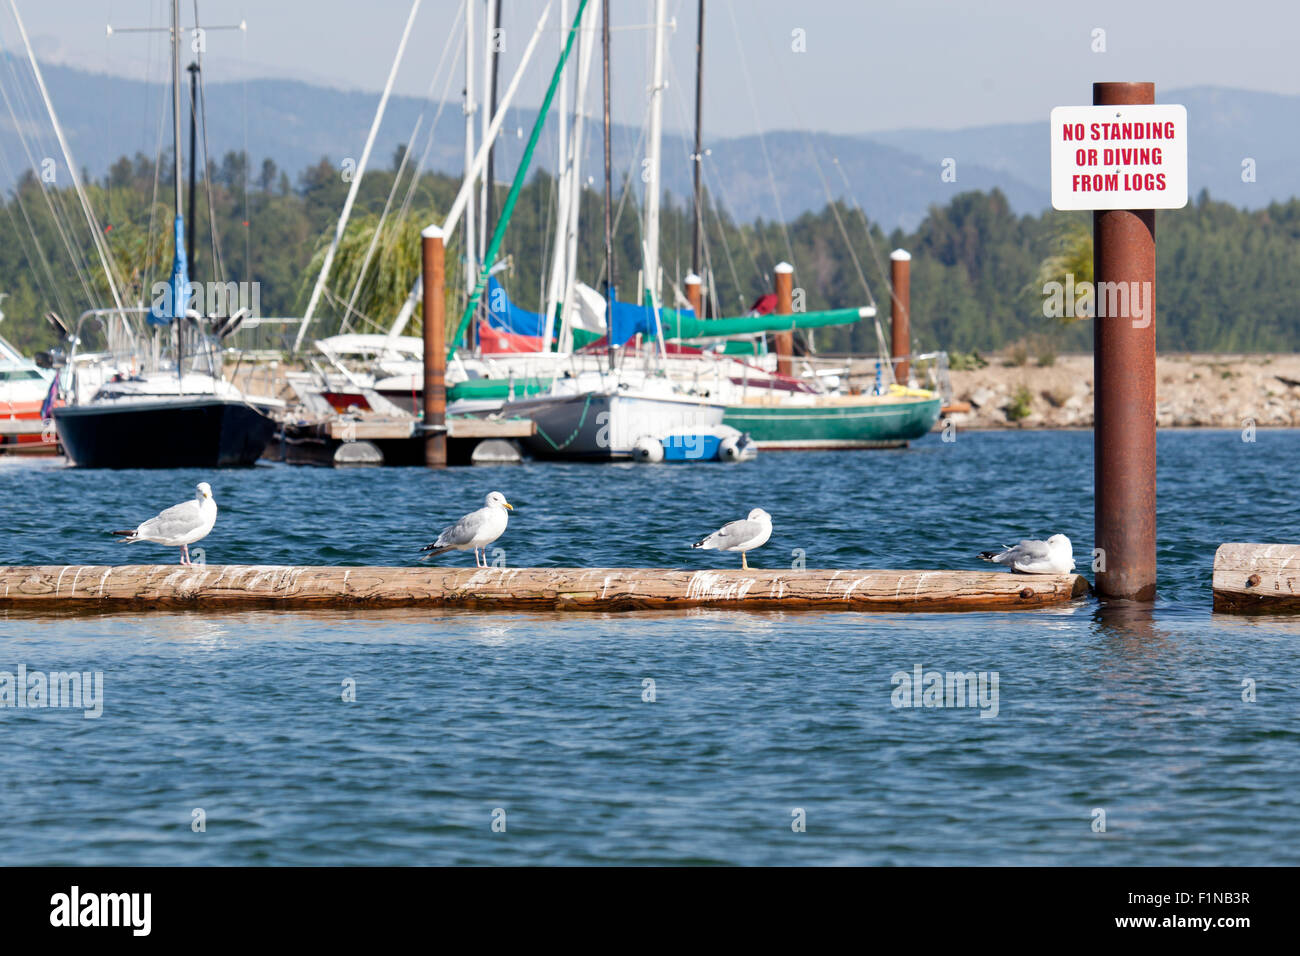 Four seagulls standing on a log in a lake, disregarding a sign posted not to stand or dive from the log. - Stock Image